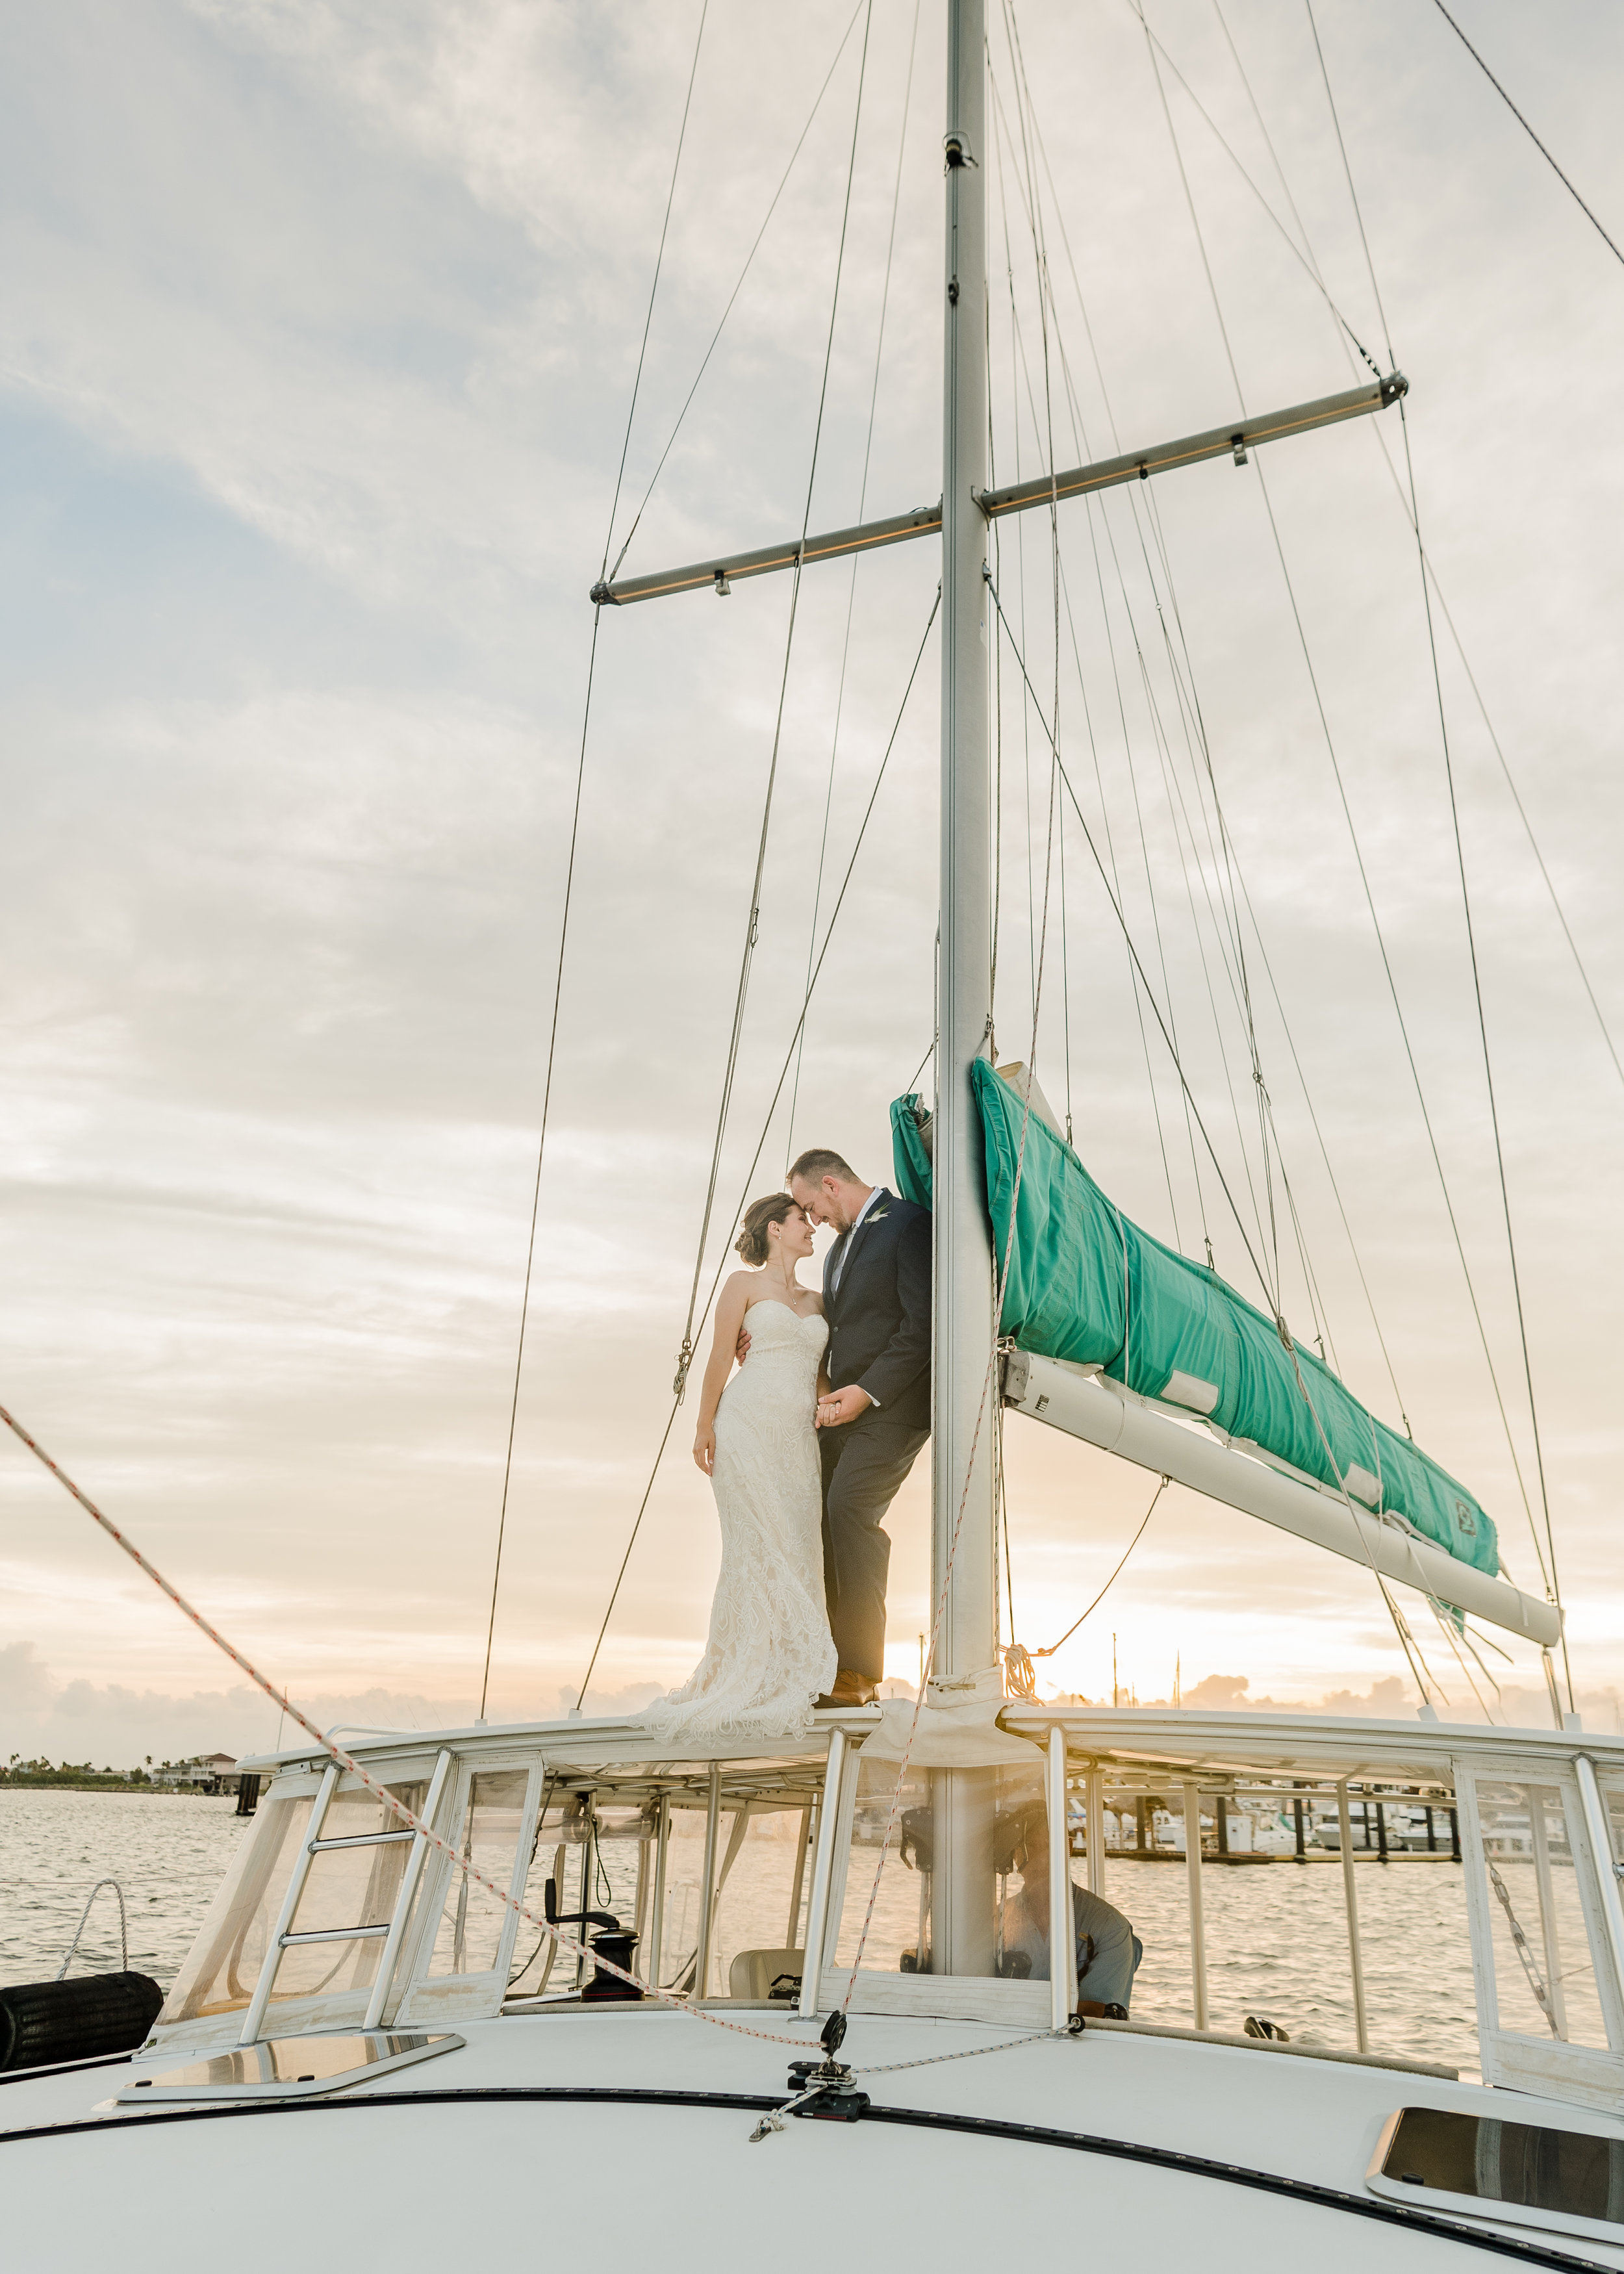 Sail-away Reception Exit Formal Photo